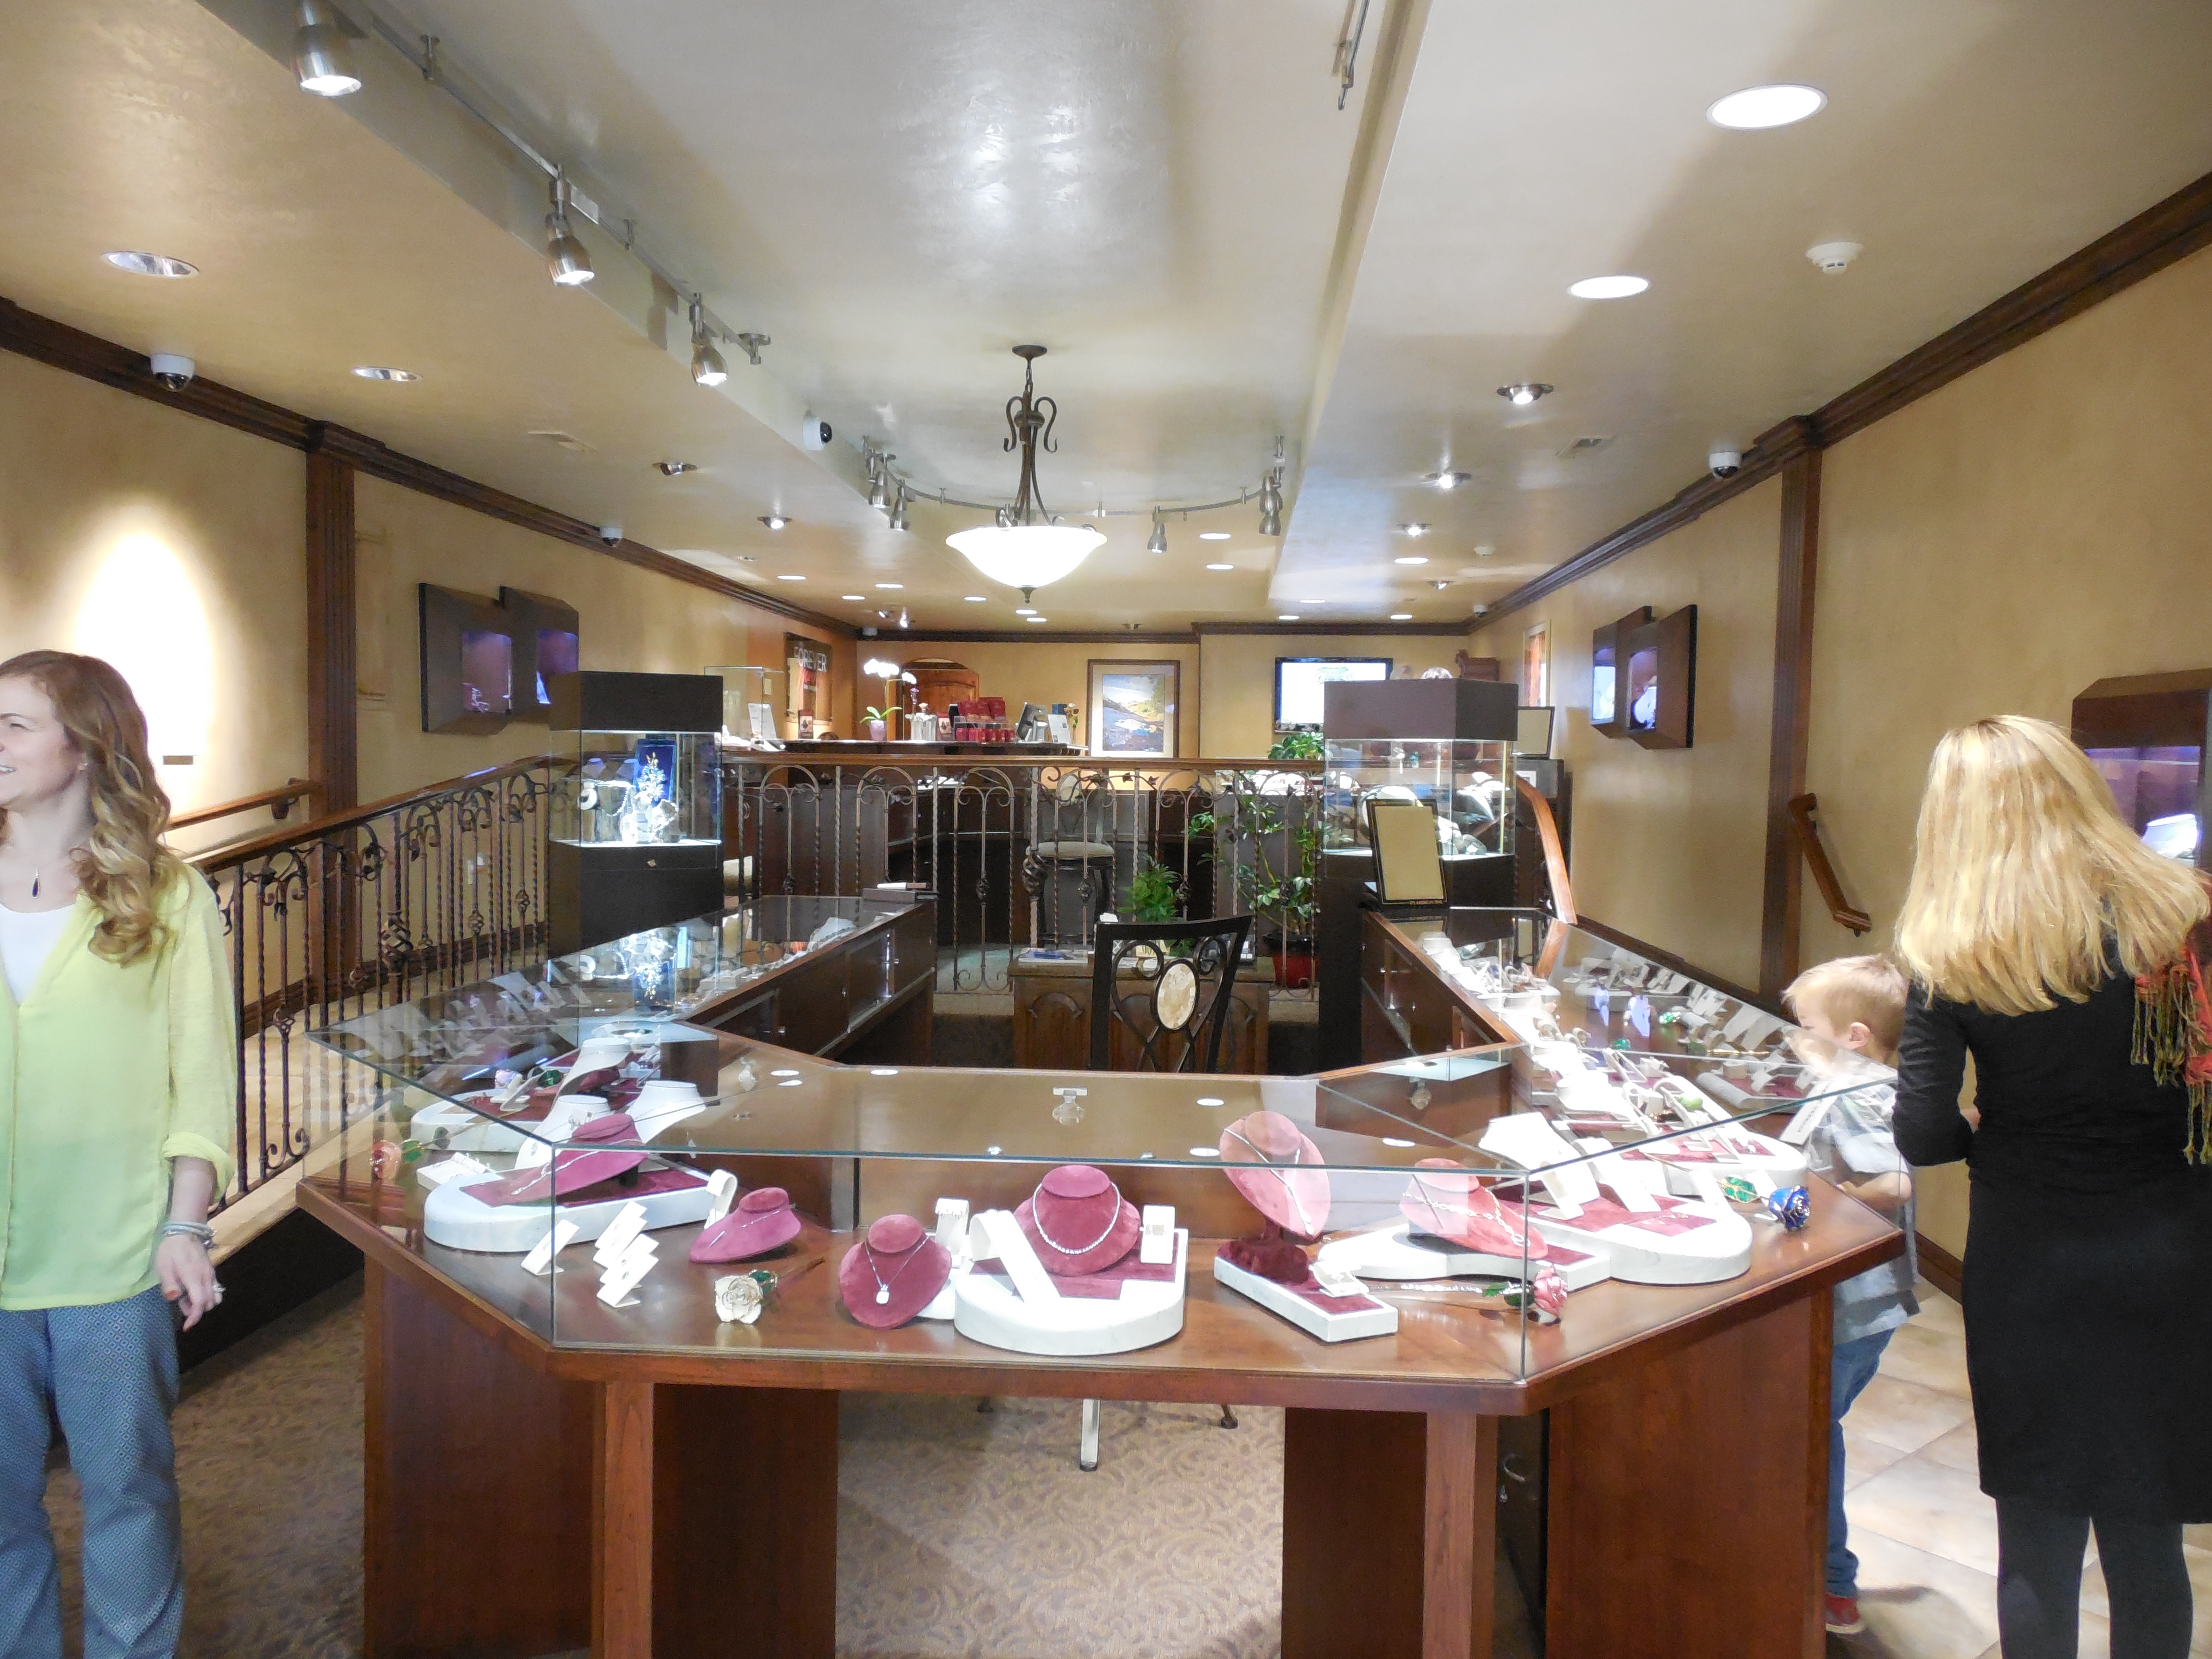 Interior of Forever Young Fine Jewelers, St. George, Utah, Nov. 17, 2016   Photo by Julie Applegate, St. George News